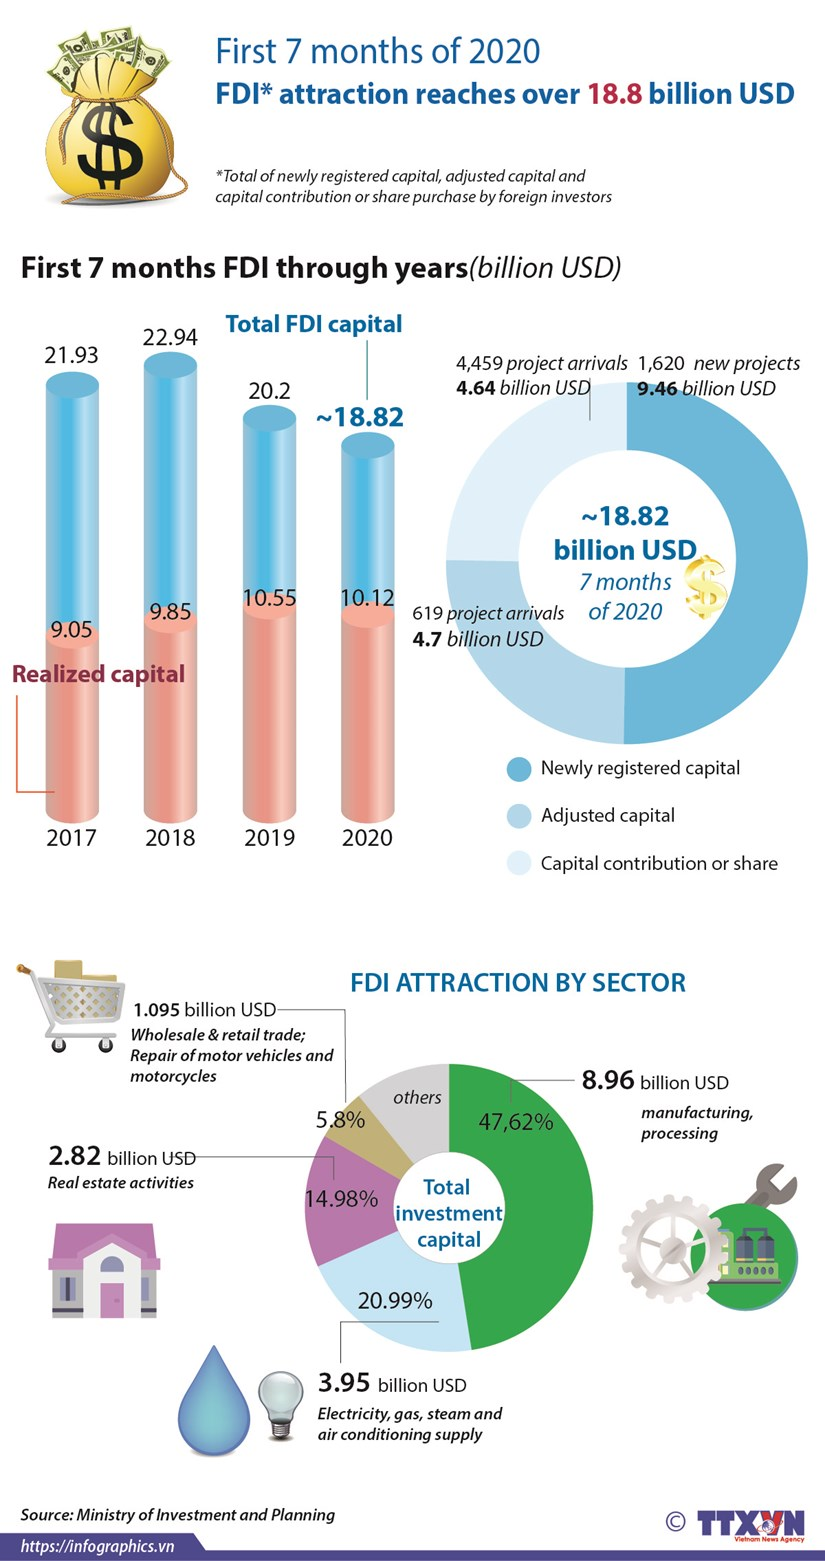 First 7 months FDI attraction reaches over 18.8 billion USD hinh anh 1